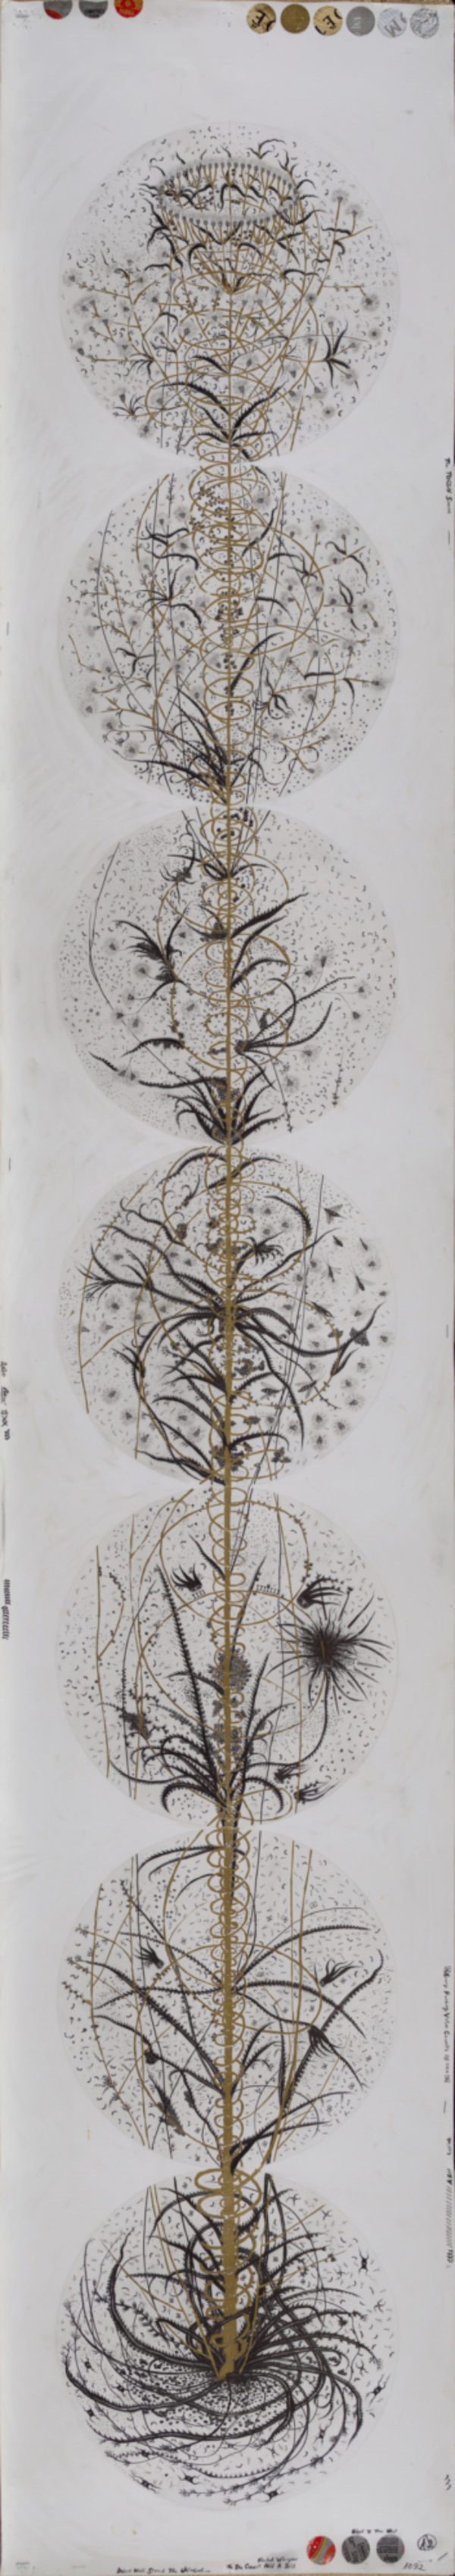 Hipkiss, Bulwark #11 from The Towers, 2017. Graphite, silver ink, silver tape, and metal leaf on Fabriano 4 paper, 89 × 16 inches, each. Courtesy of the artists.